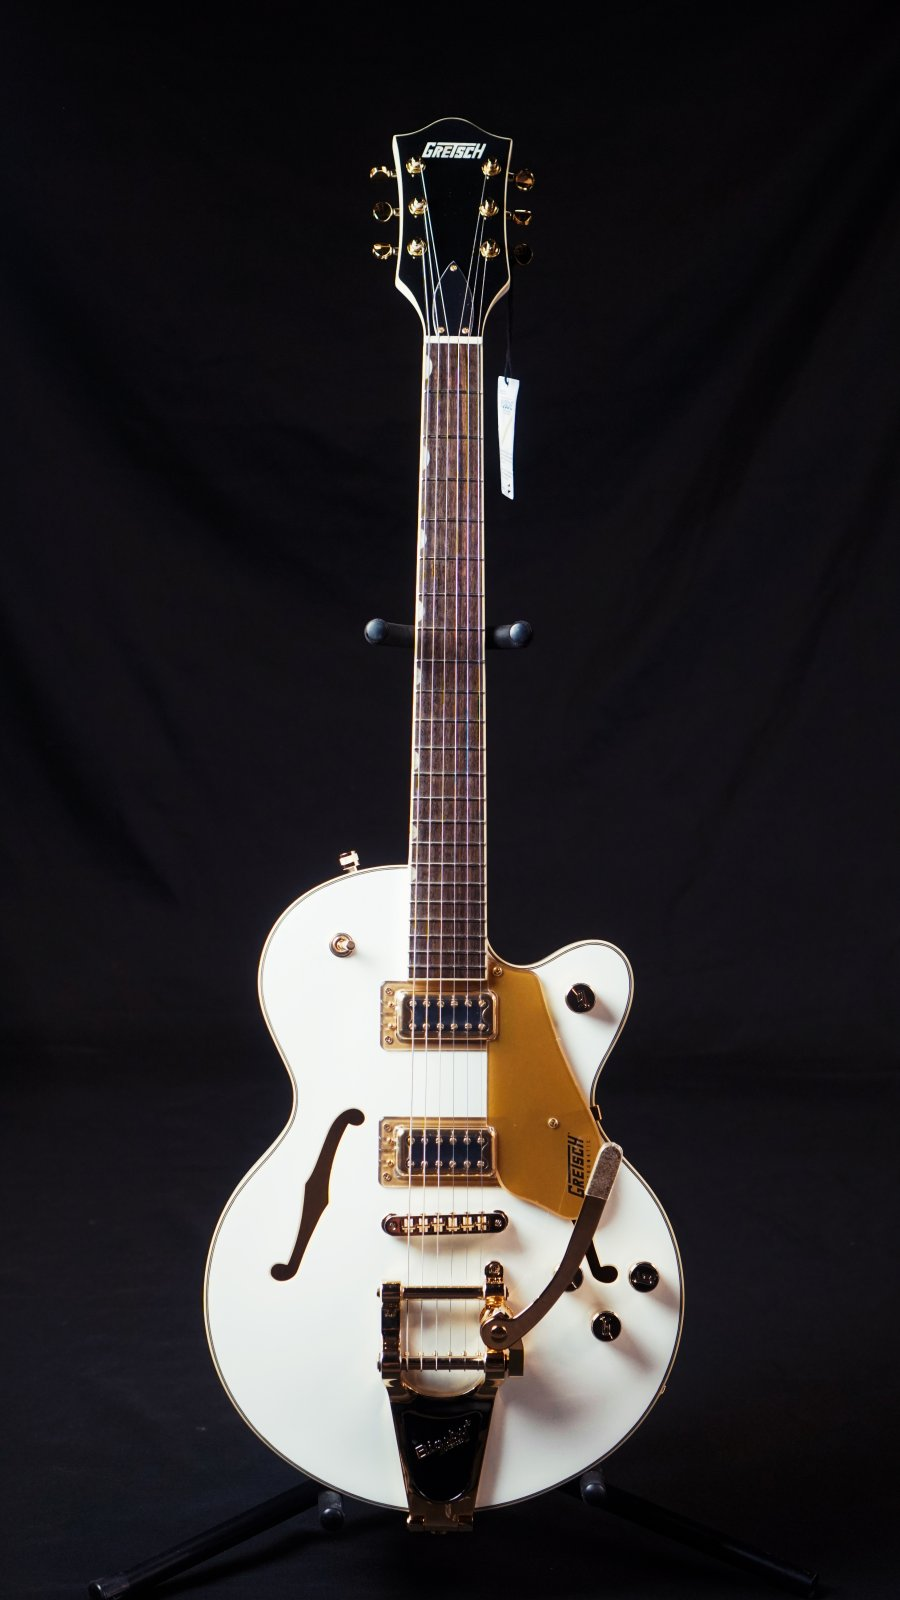 Gretsch G5655TG LIMITED EDITION ELECTROMATIC CENTER BLOCK JR. SINGLE-CUT WITH BIGSBY AND GOLD HARDWARE